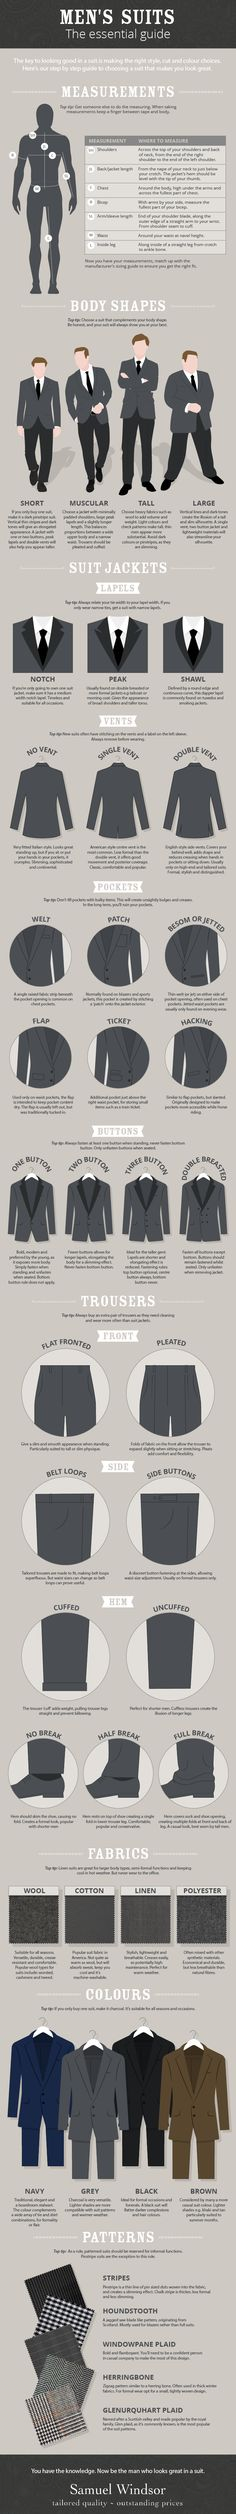 Buying a new suit? C